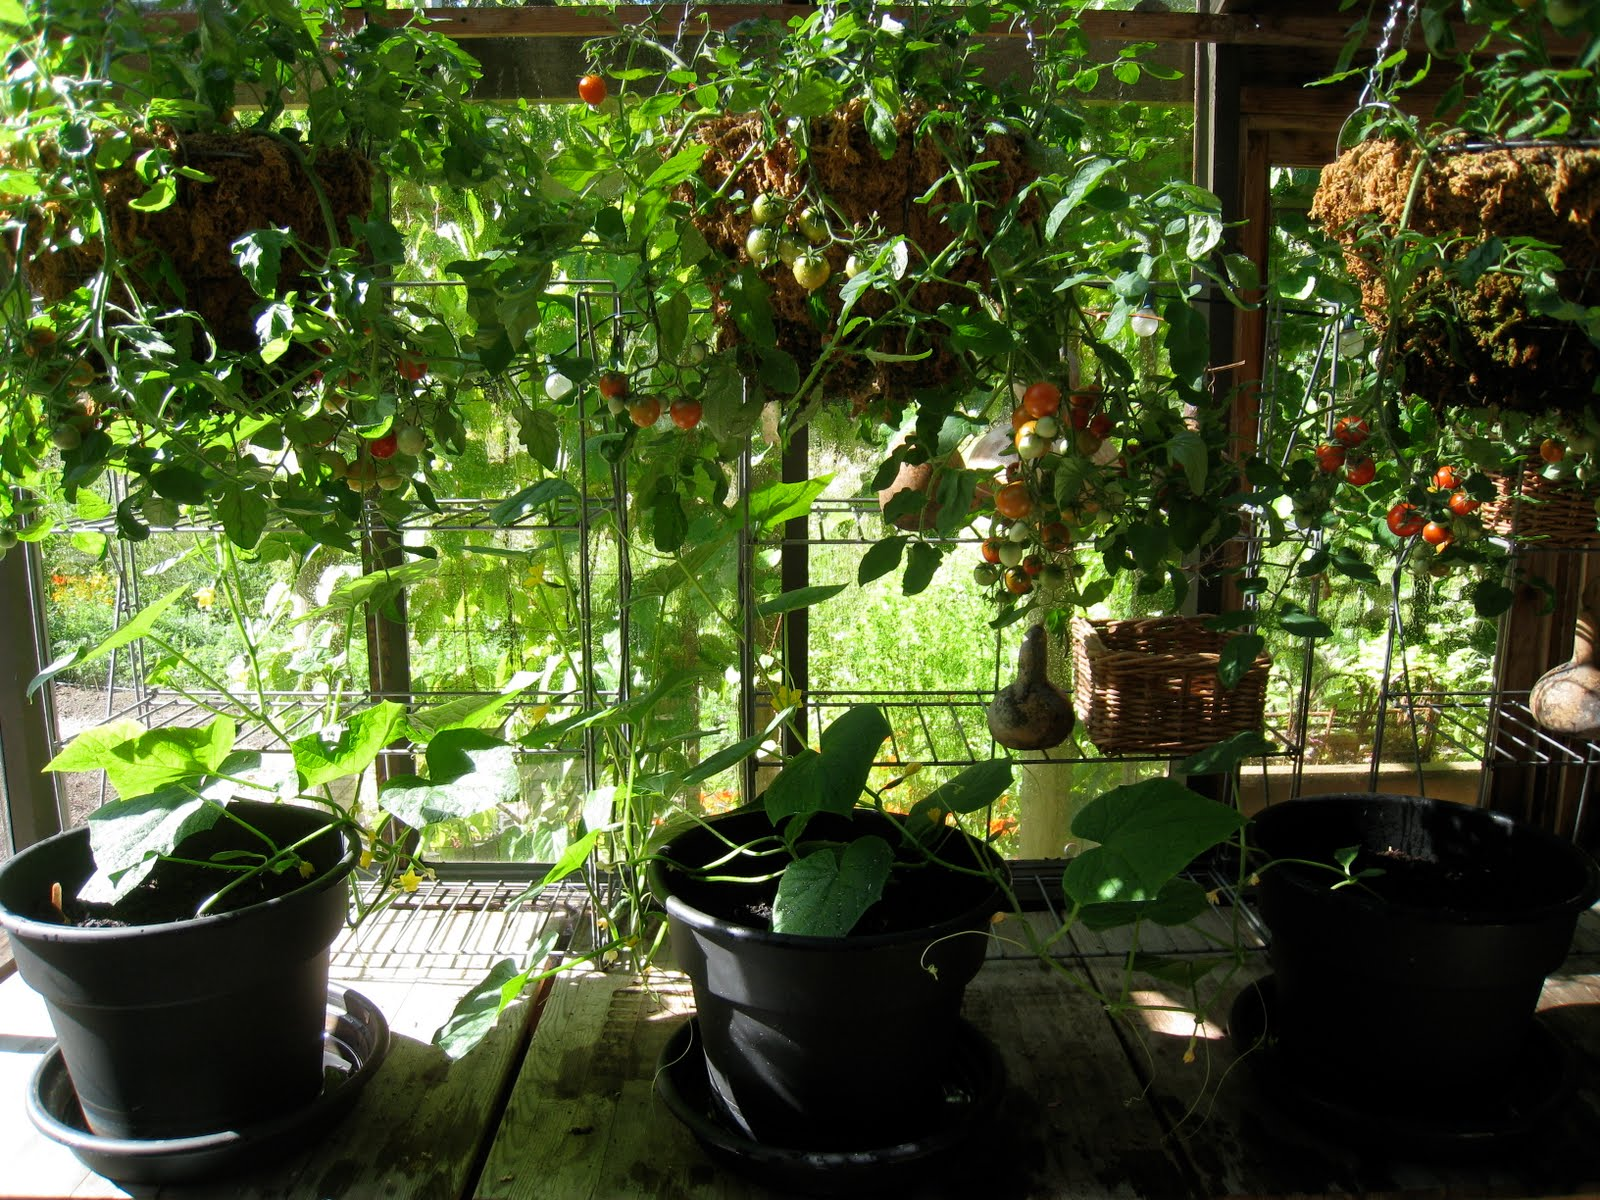 How much to water tomatoes in containers - Like Most People I Know I Water My Containers By Hand I Ve Found A System That Seems To Work Really Well I Put Most Of My Tumbler Tomatoes In Hanging